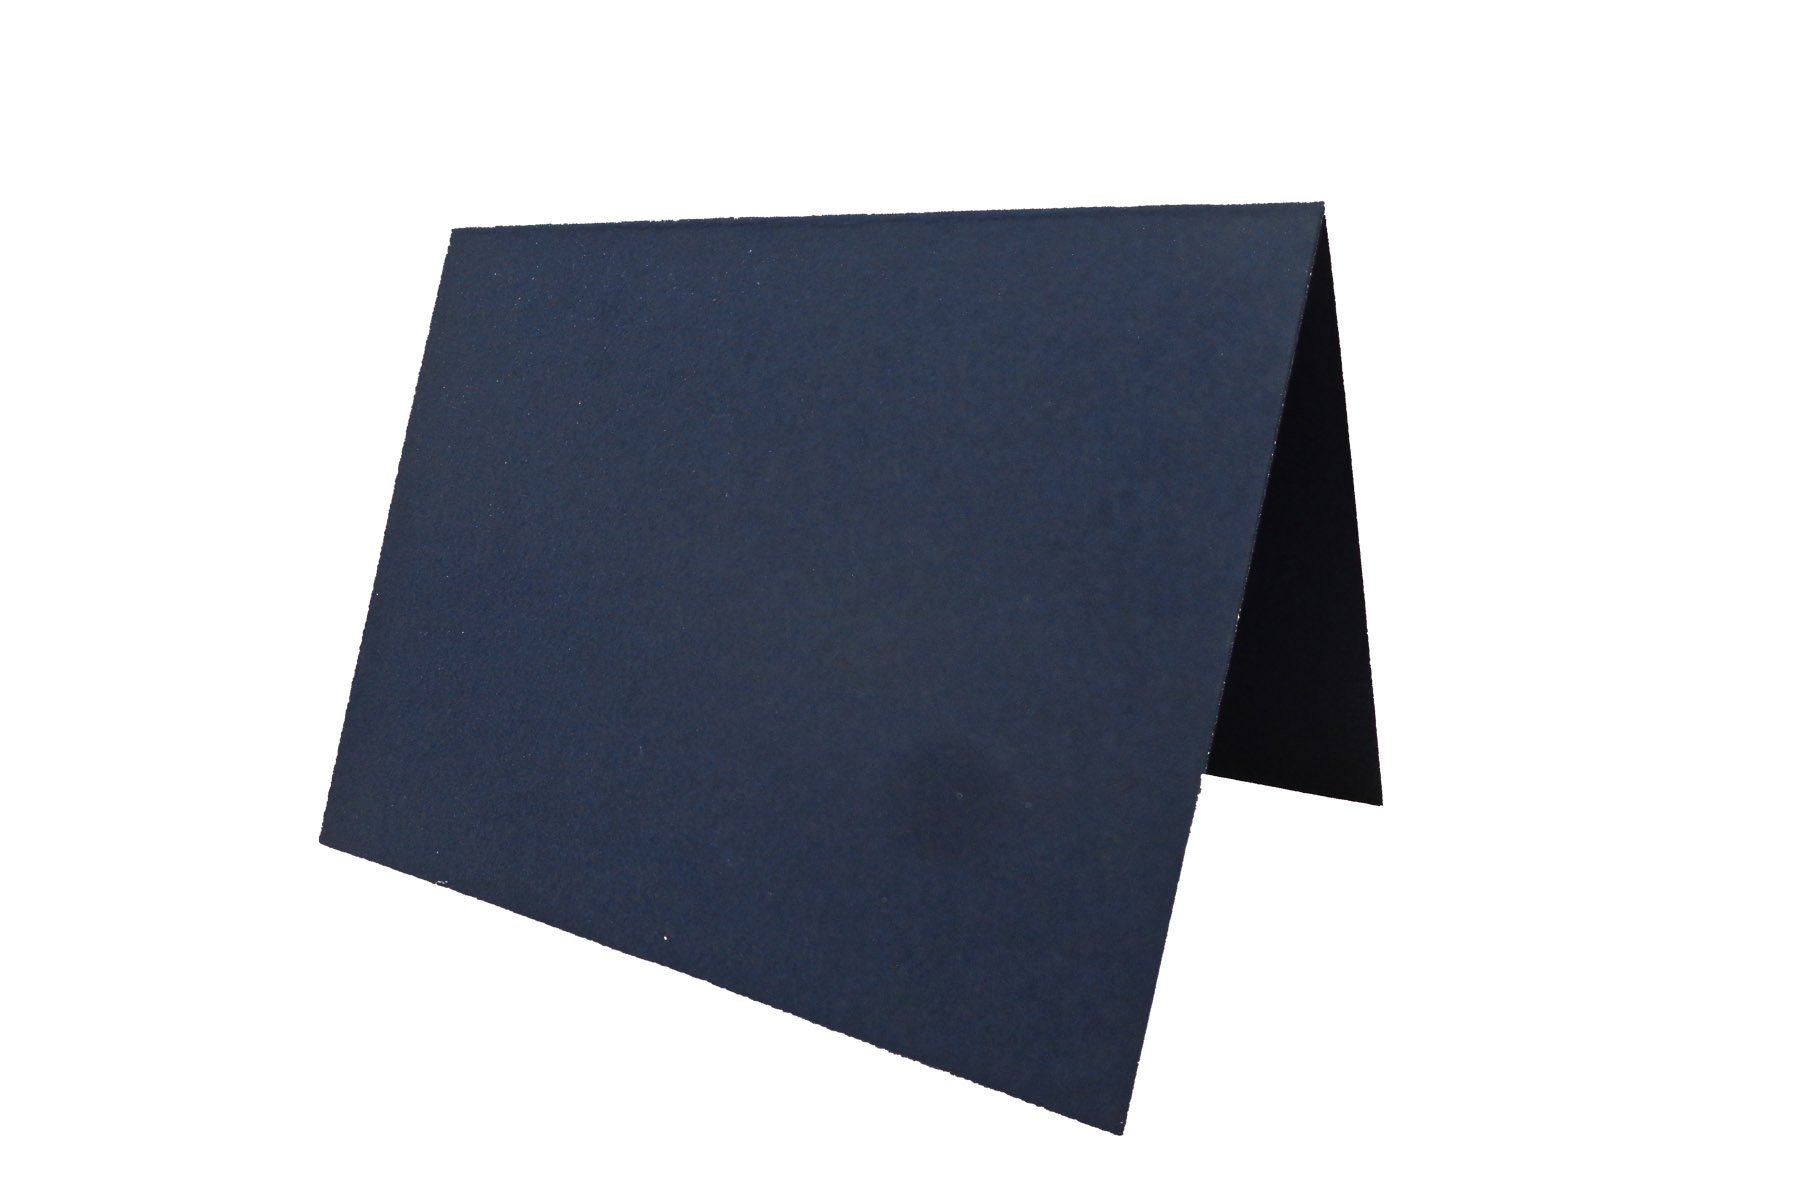 Blank Navy Place Cards Tent Cards - 50 Pack | Size 3.5'' x 5'' Flat 2.5'' x 3.5'' Folded